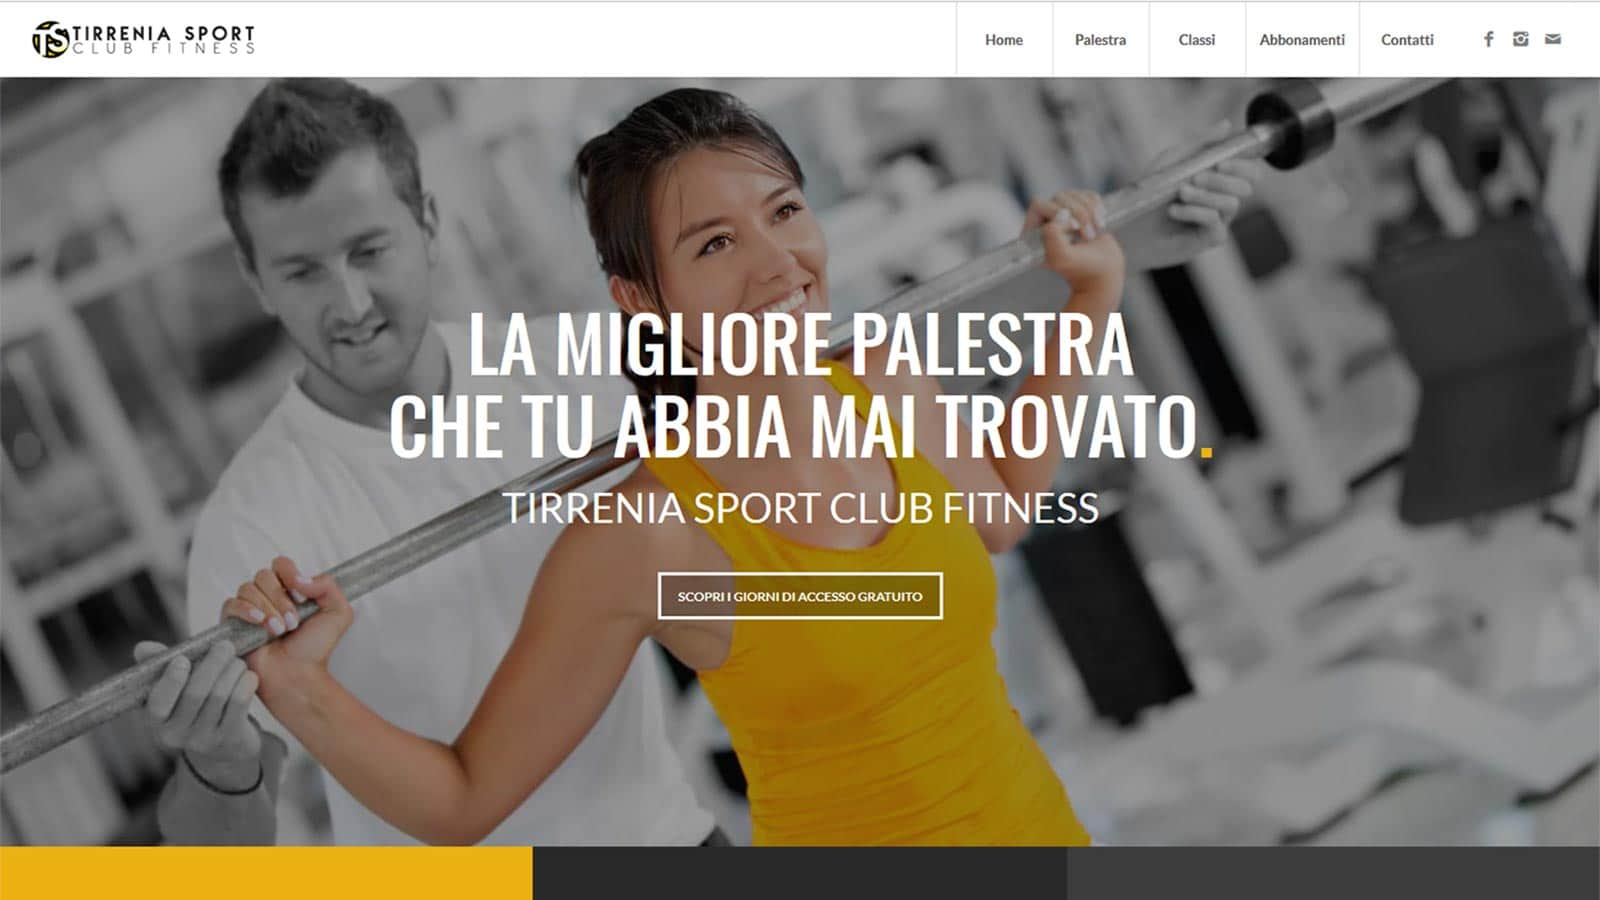 www.tirreniasport.it